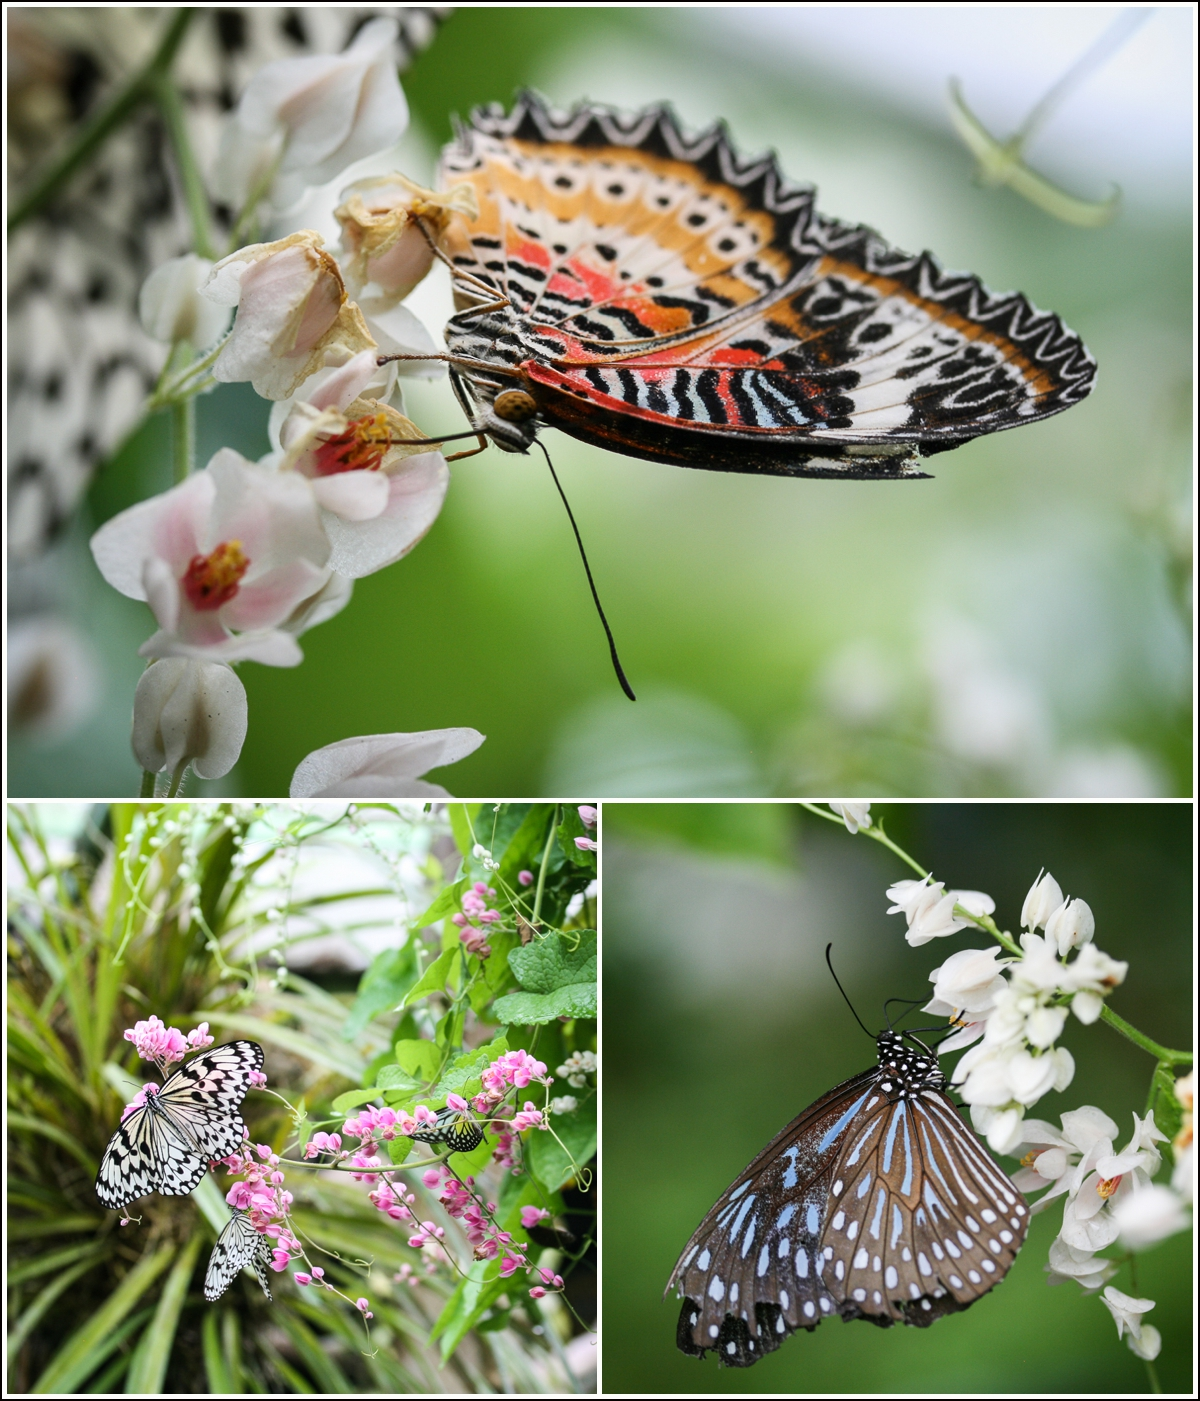 penang-butterfly-farm1